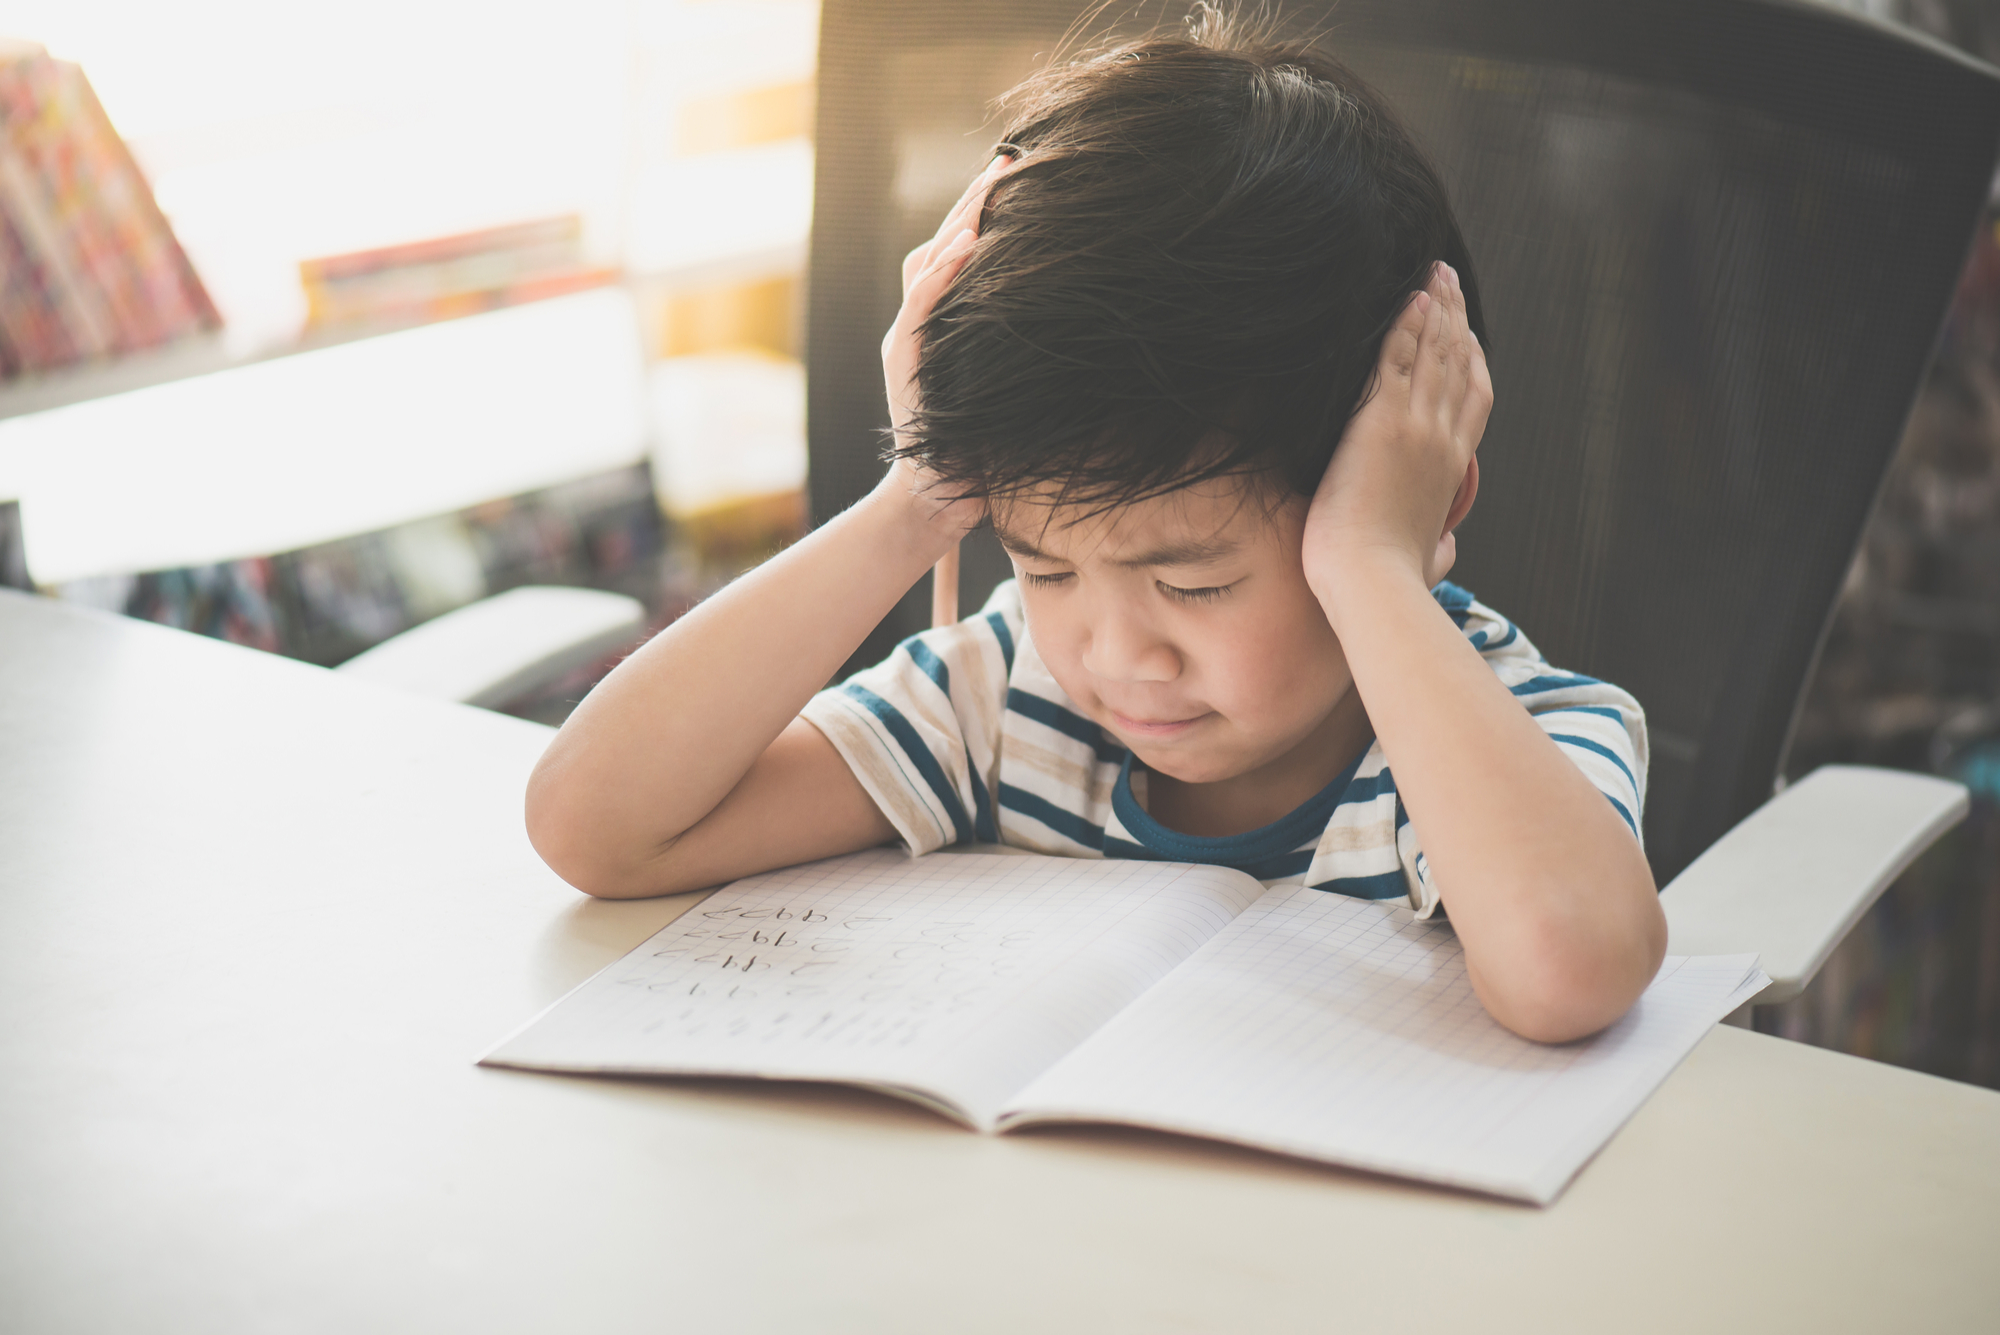 Child suffering from visual stress